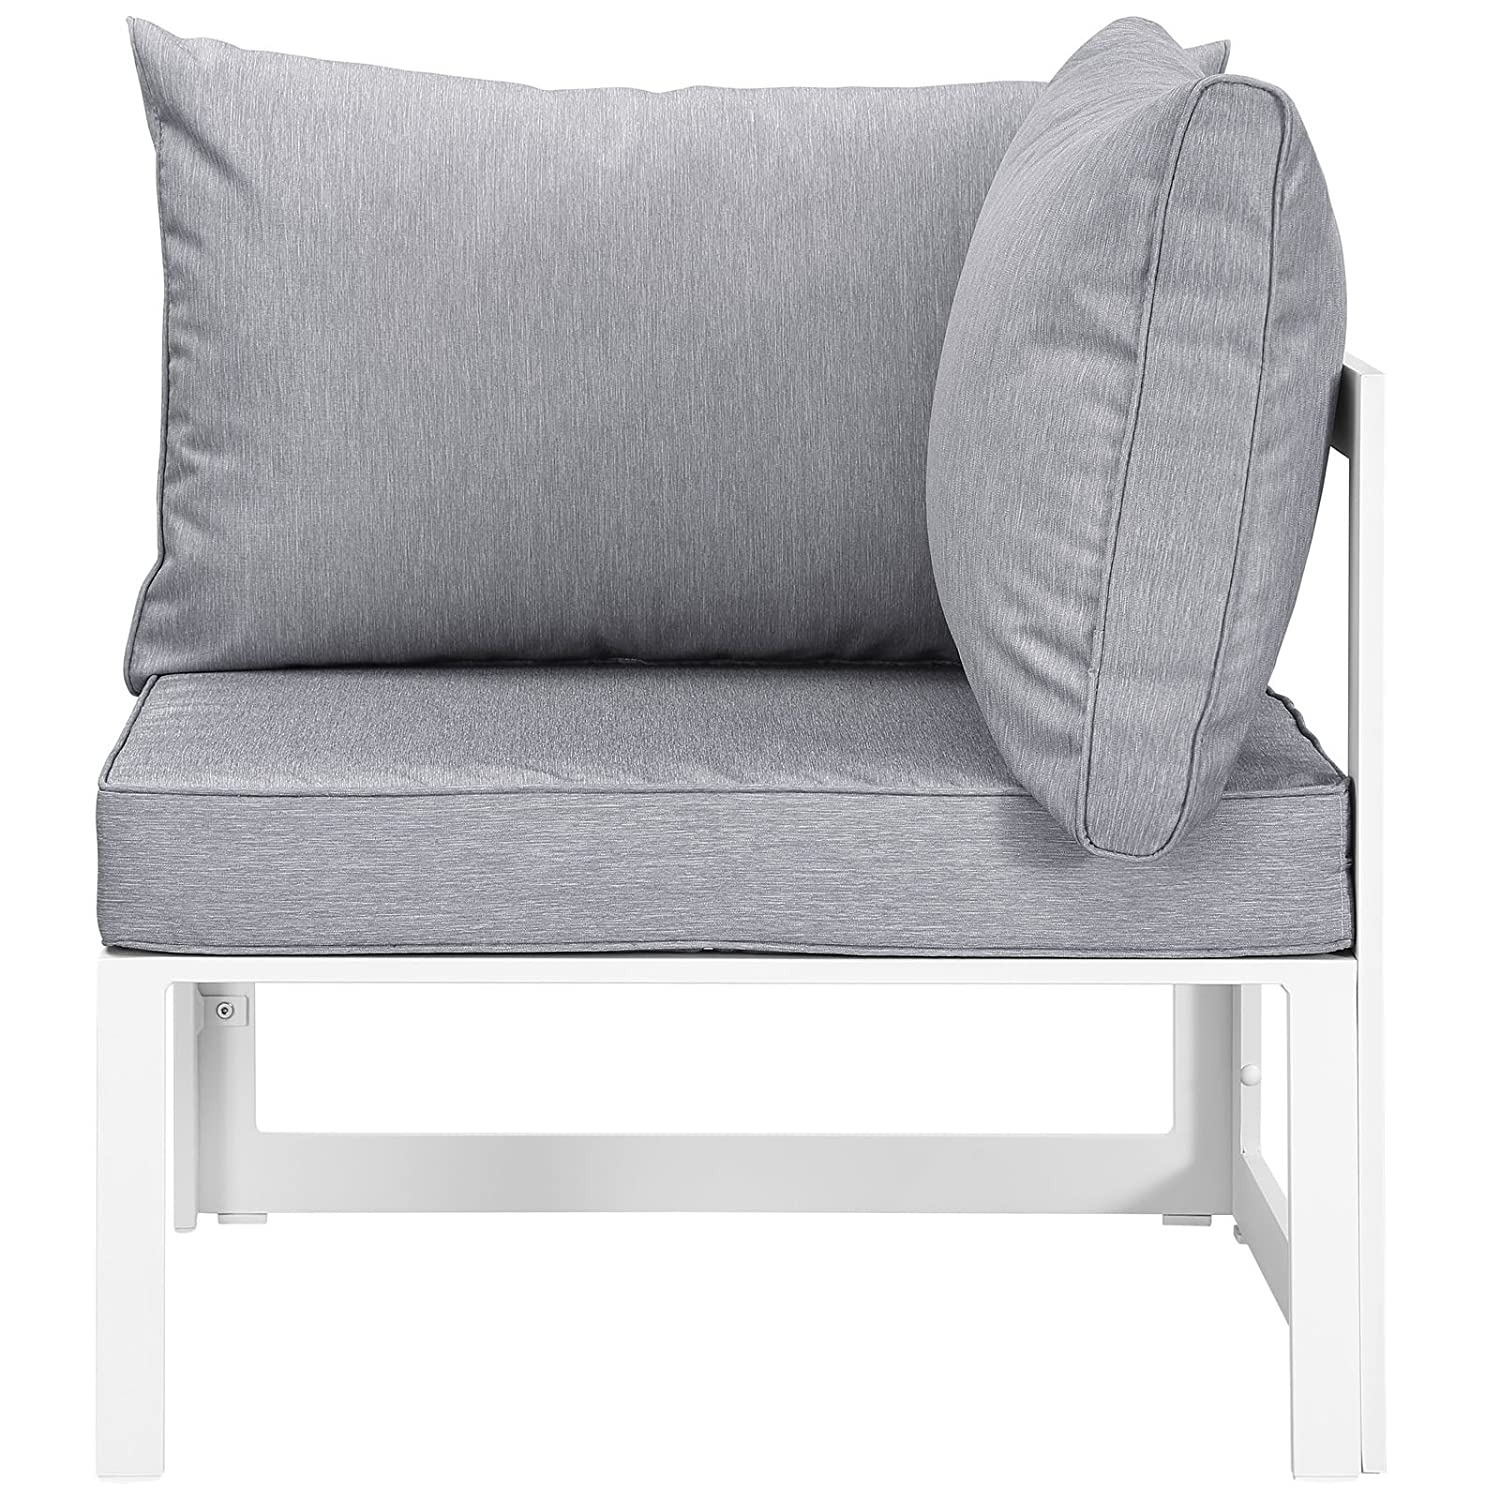 7-Piece Outdoor Sectional In Gray Fabric Cushion - image-2